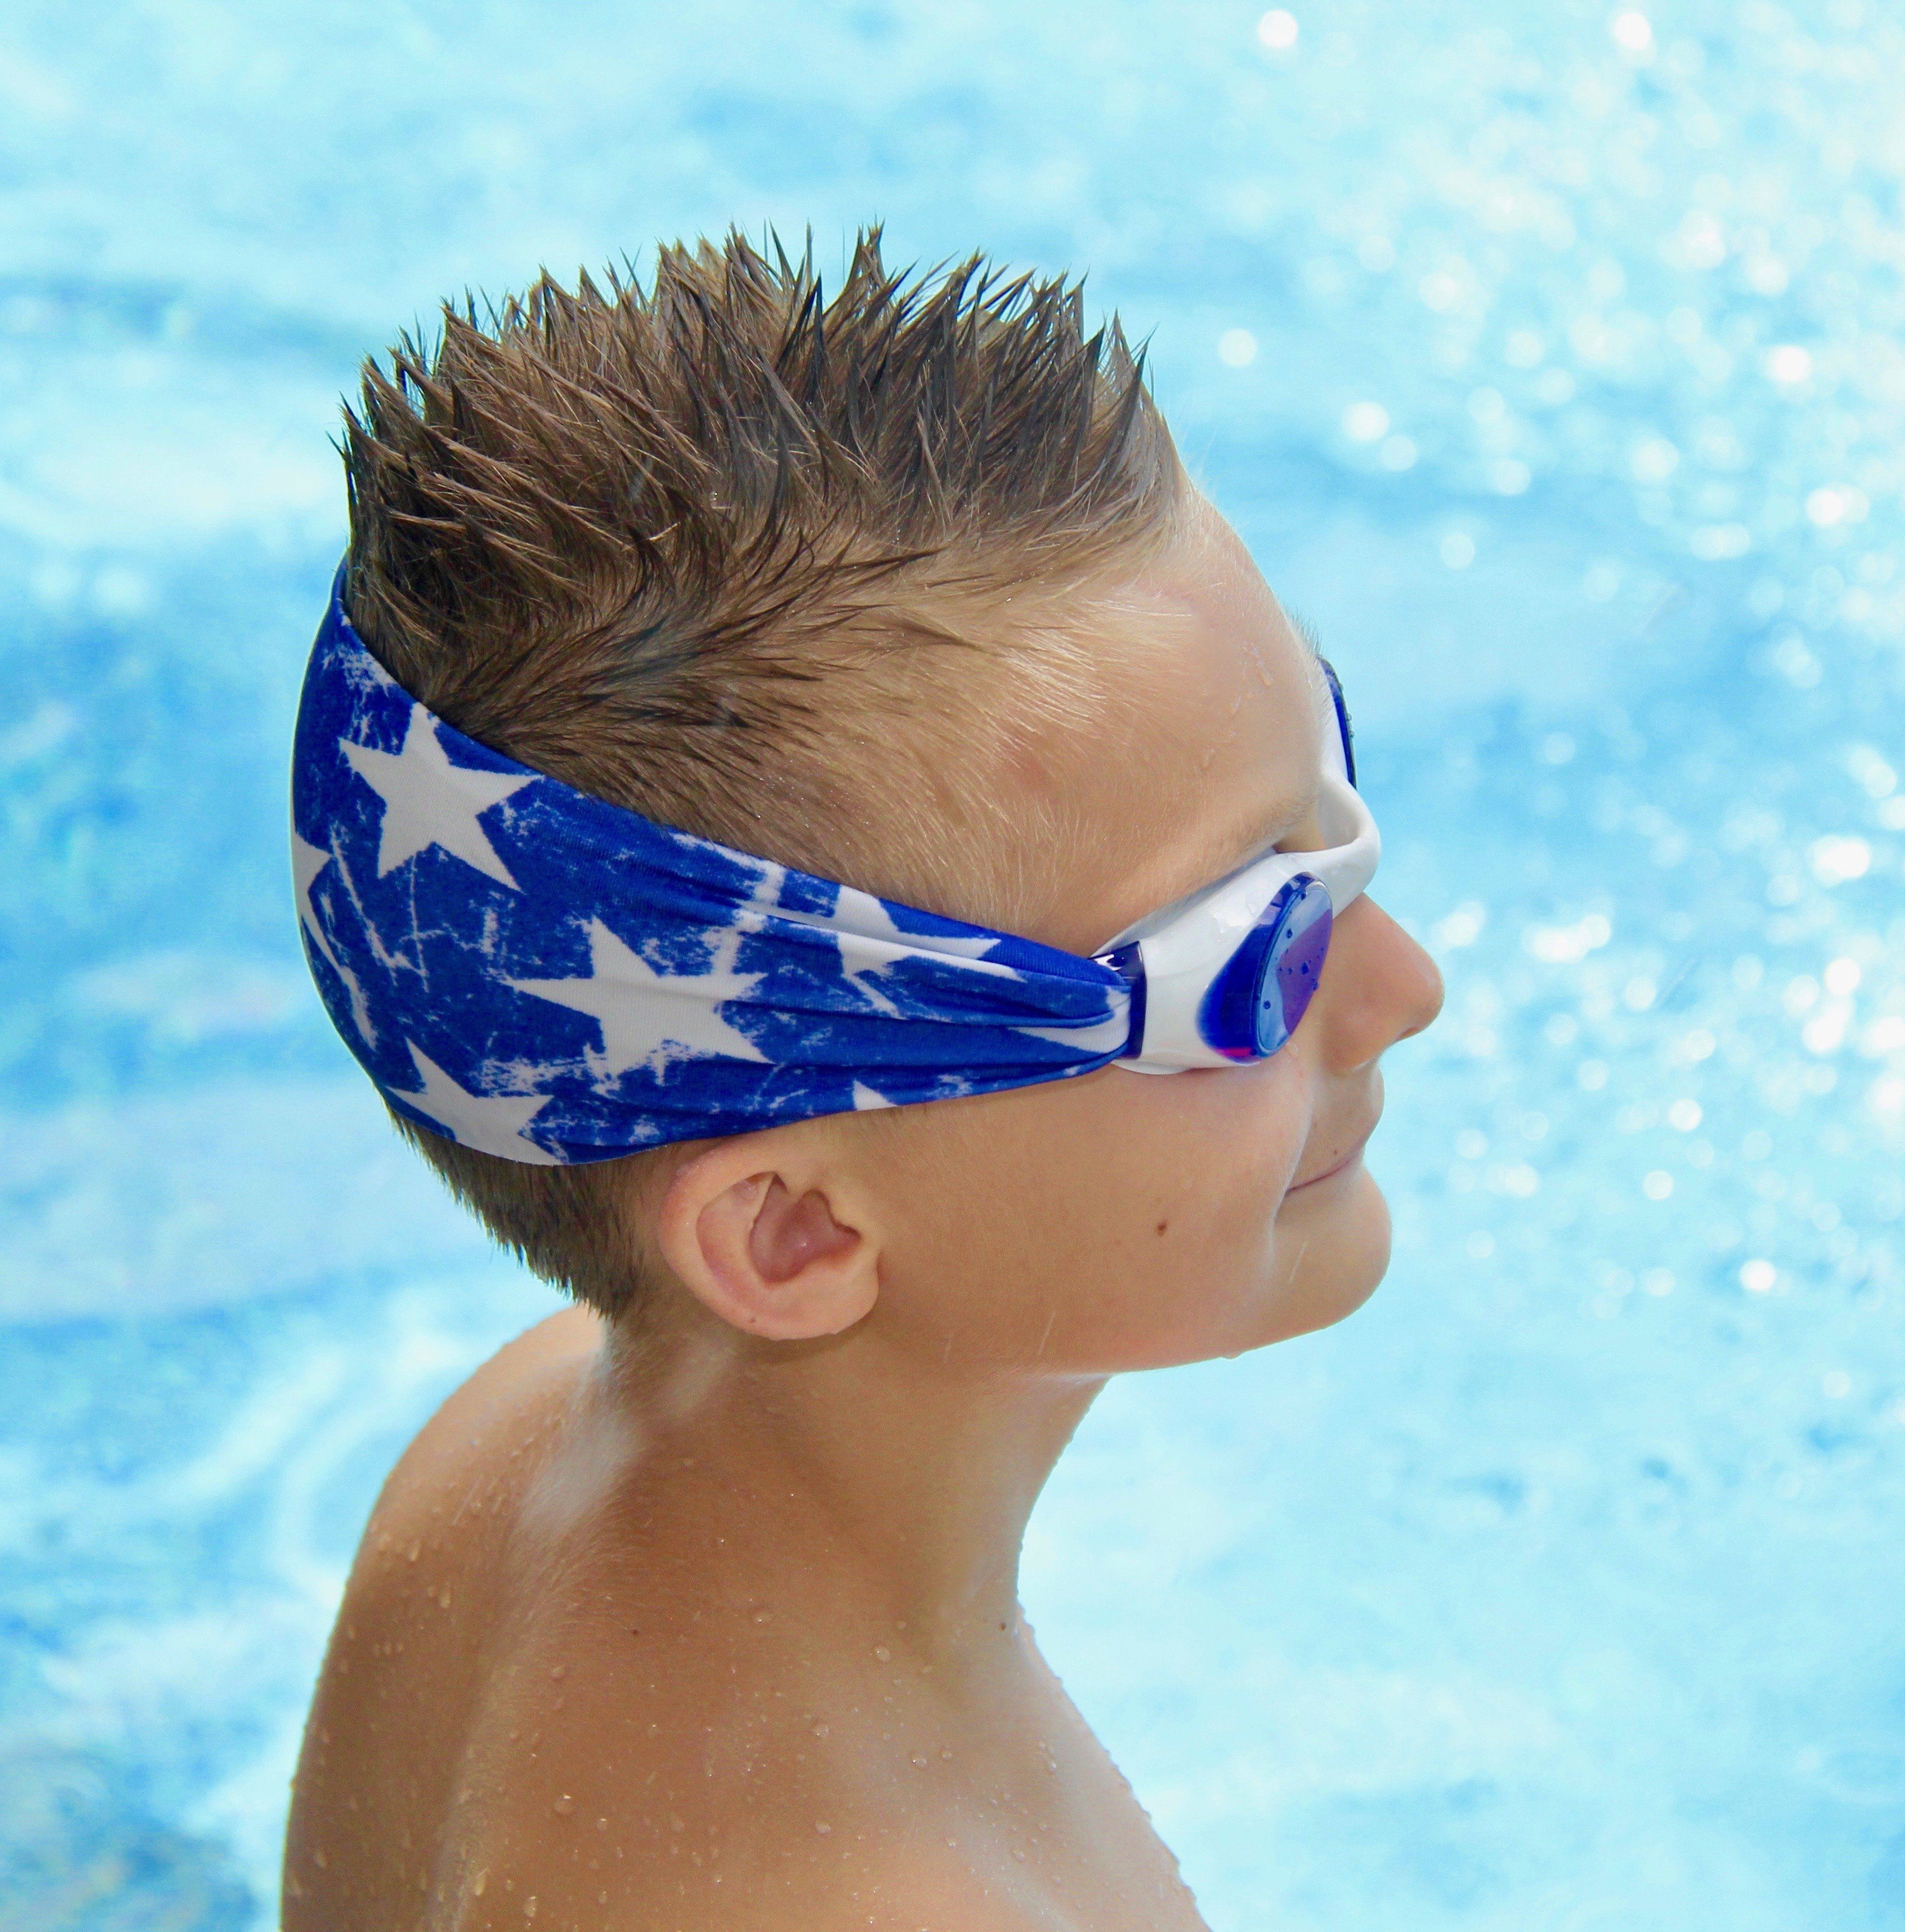 Mom's Swim Goggle Design Is A Game Changer For Summer Vacations